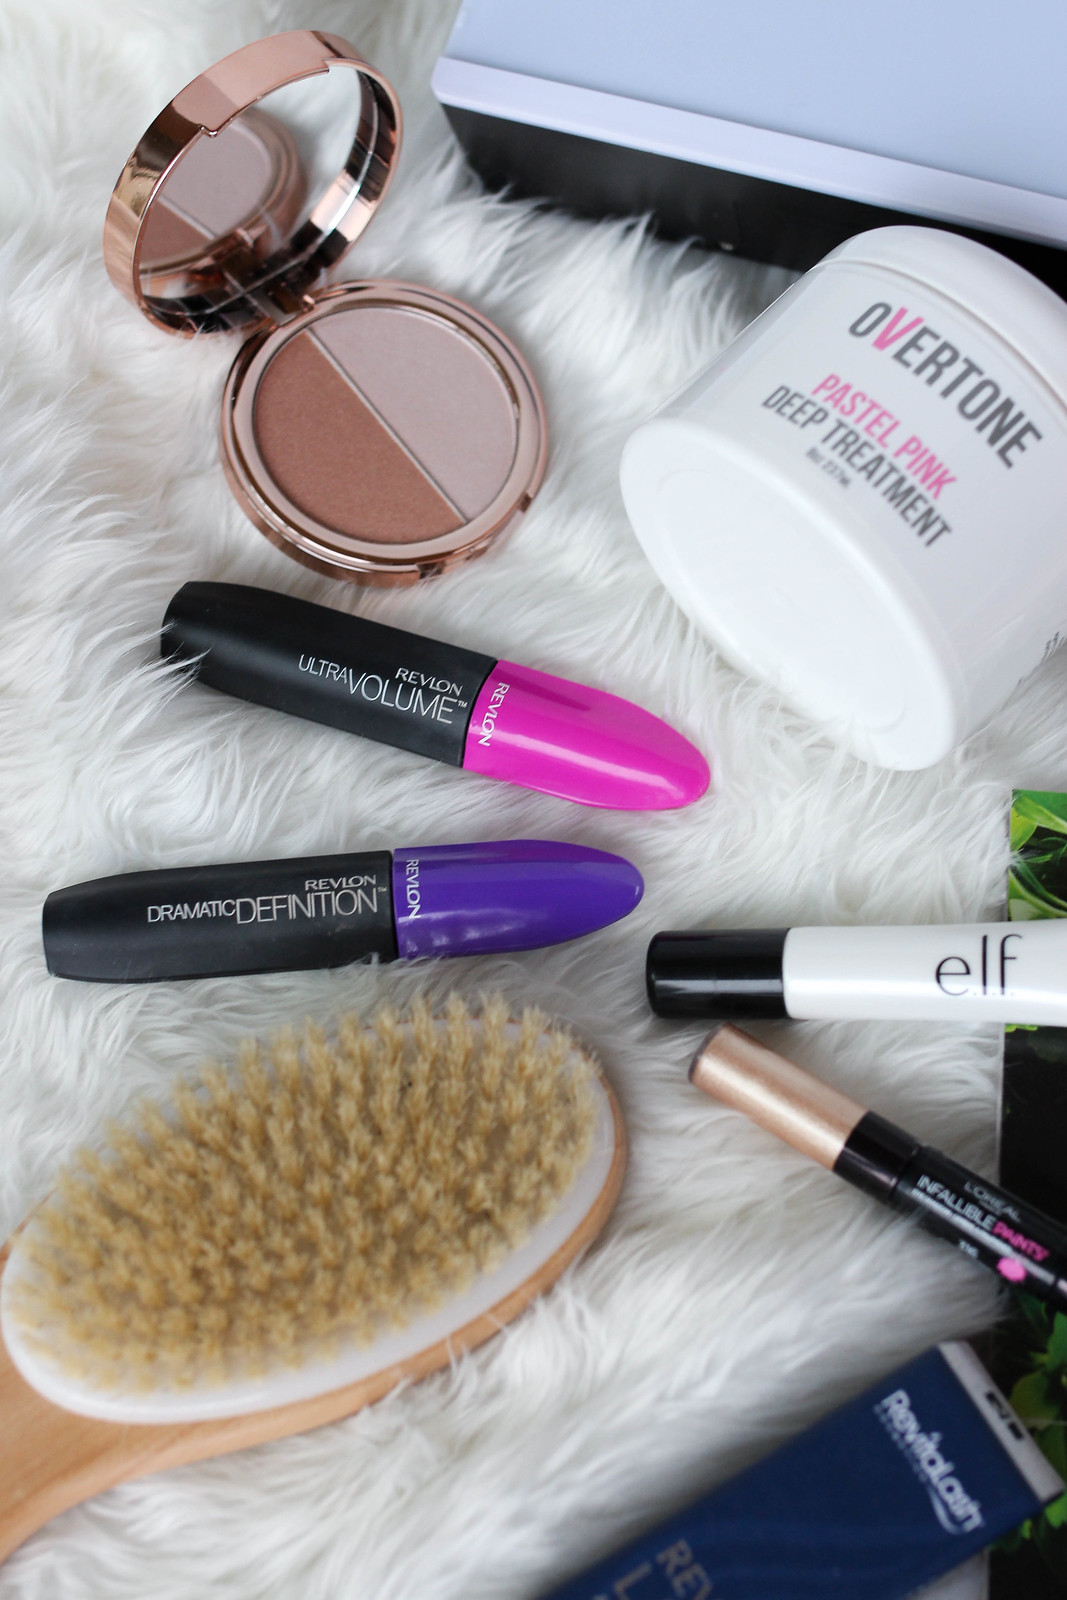 elf cosmetics Heart Defensor Highlighter Palette Revlon Ultra Volume Mascara Revlon Dramatic Definition Mascara Review